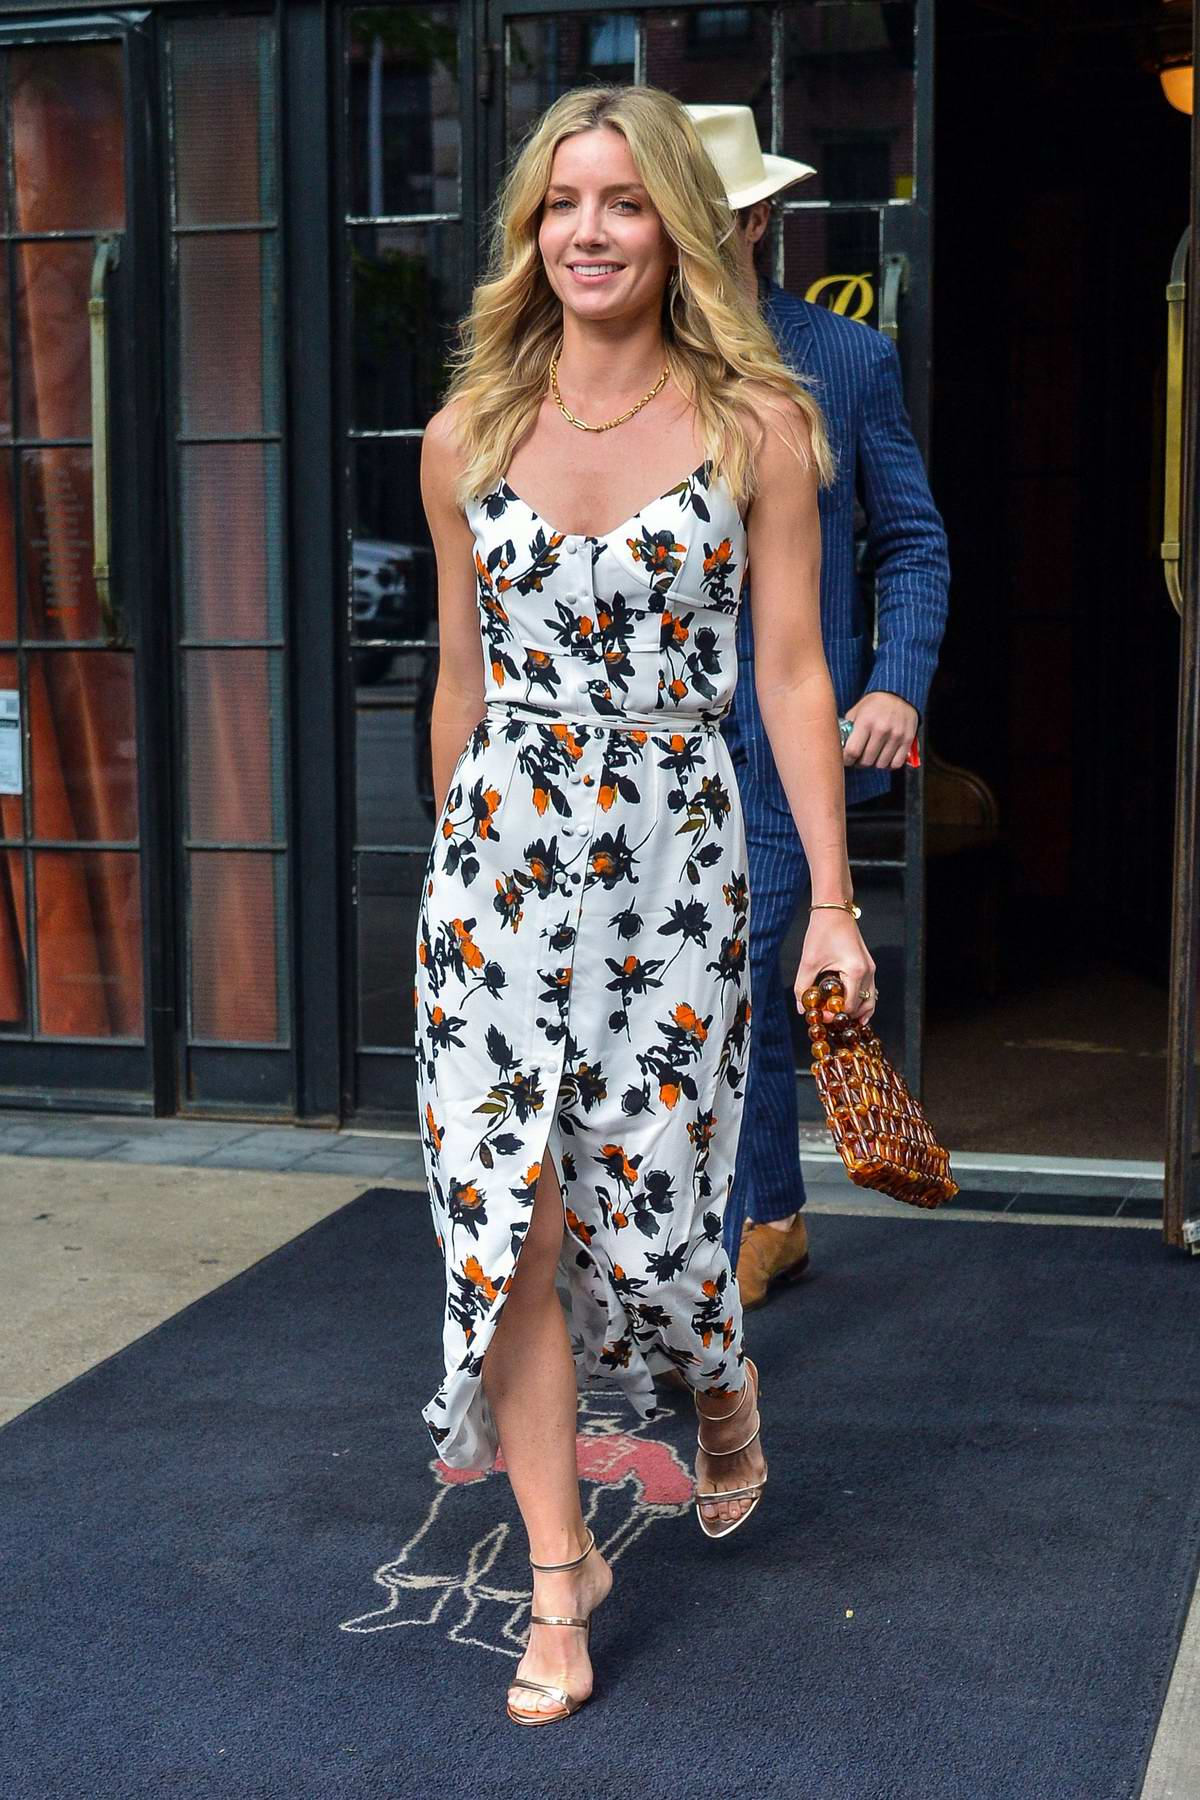 Annabelle Wallis is all smiles as she leaves The Bowery Hotel with Chris Pine in New York City